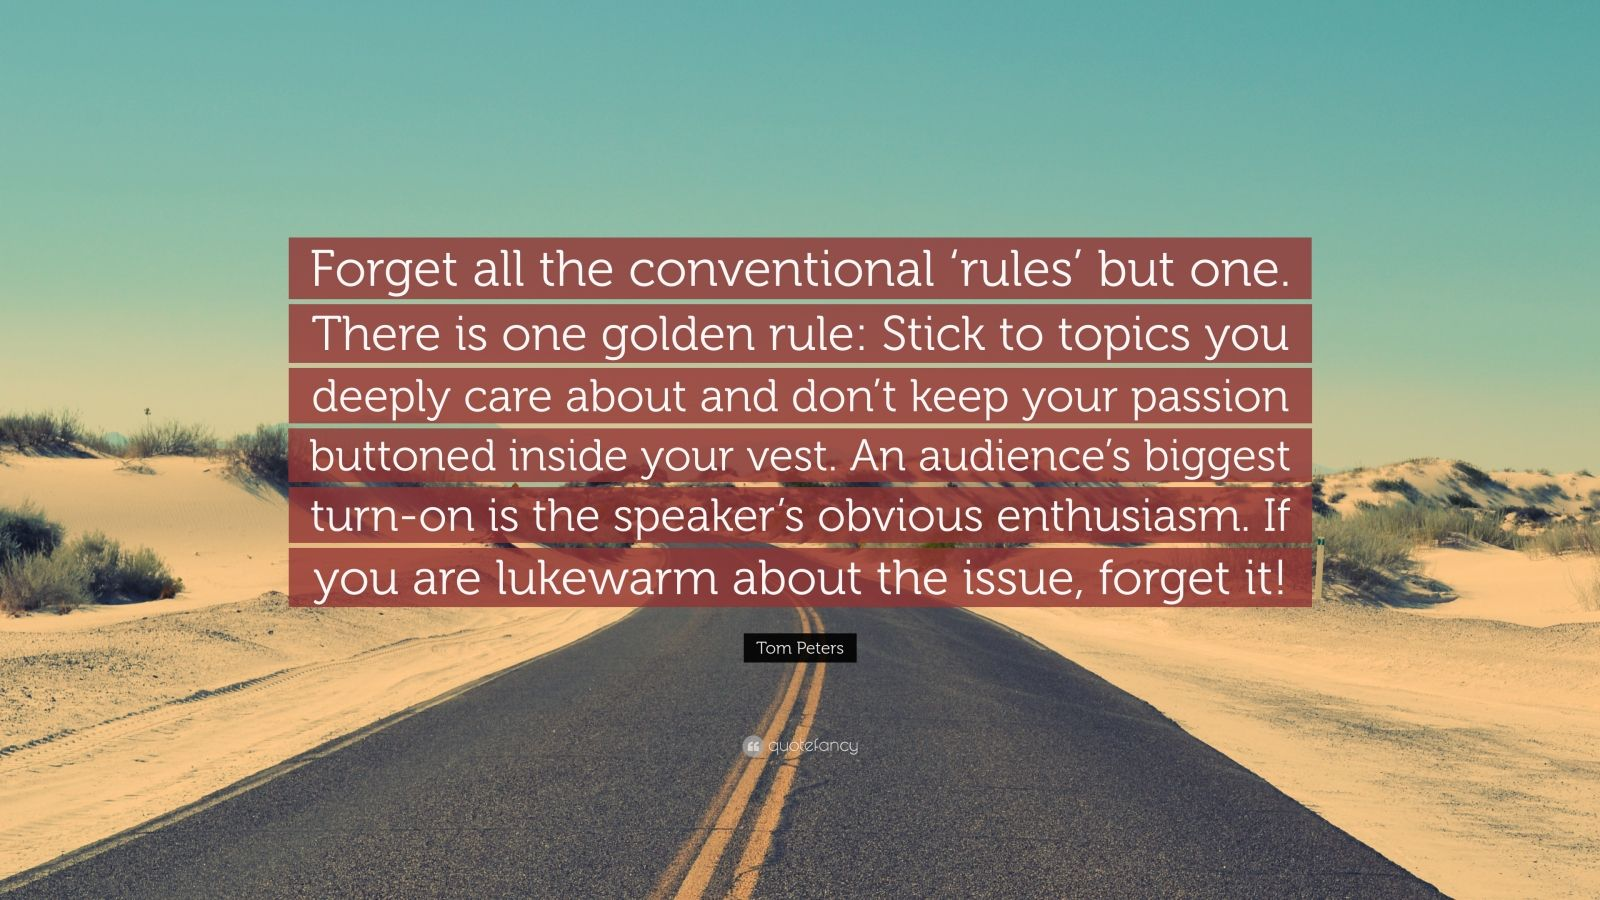 """Tom Peters Quote: """"Forget all the conventional 'rules' but one. There is one golden rule: Stick to topics you deeply care about and don't keep your passion buttoned inside your vest. An audience's biggest turn-on is the speaker's obvious enthusiasm. If you are lukewarm about the issue, forget it!"""""""